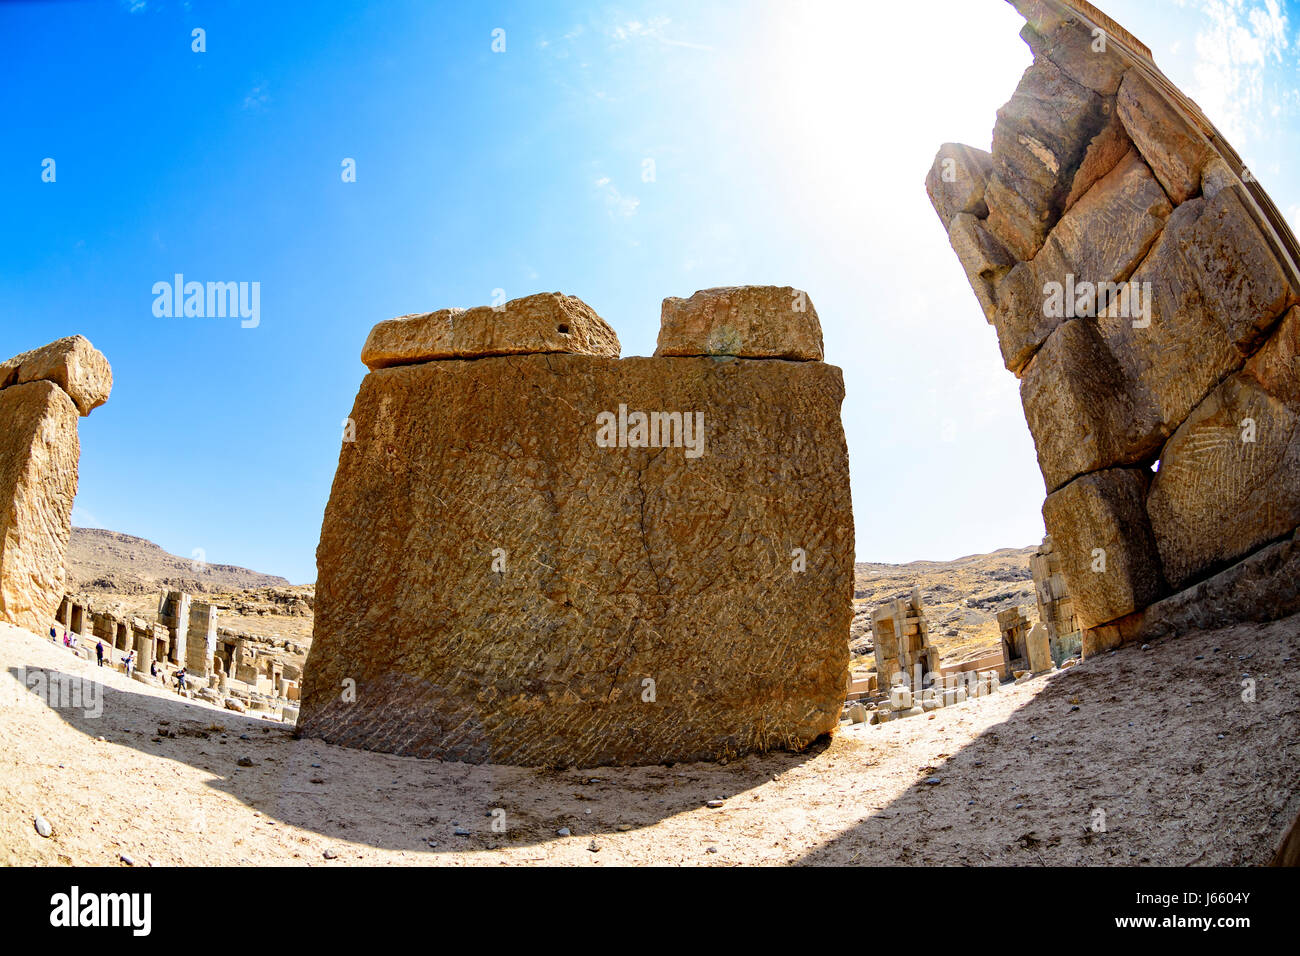 Ruines de la Perse antique de Persépolis en Iran Photo Stock